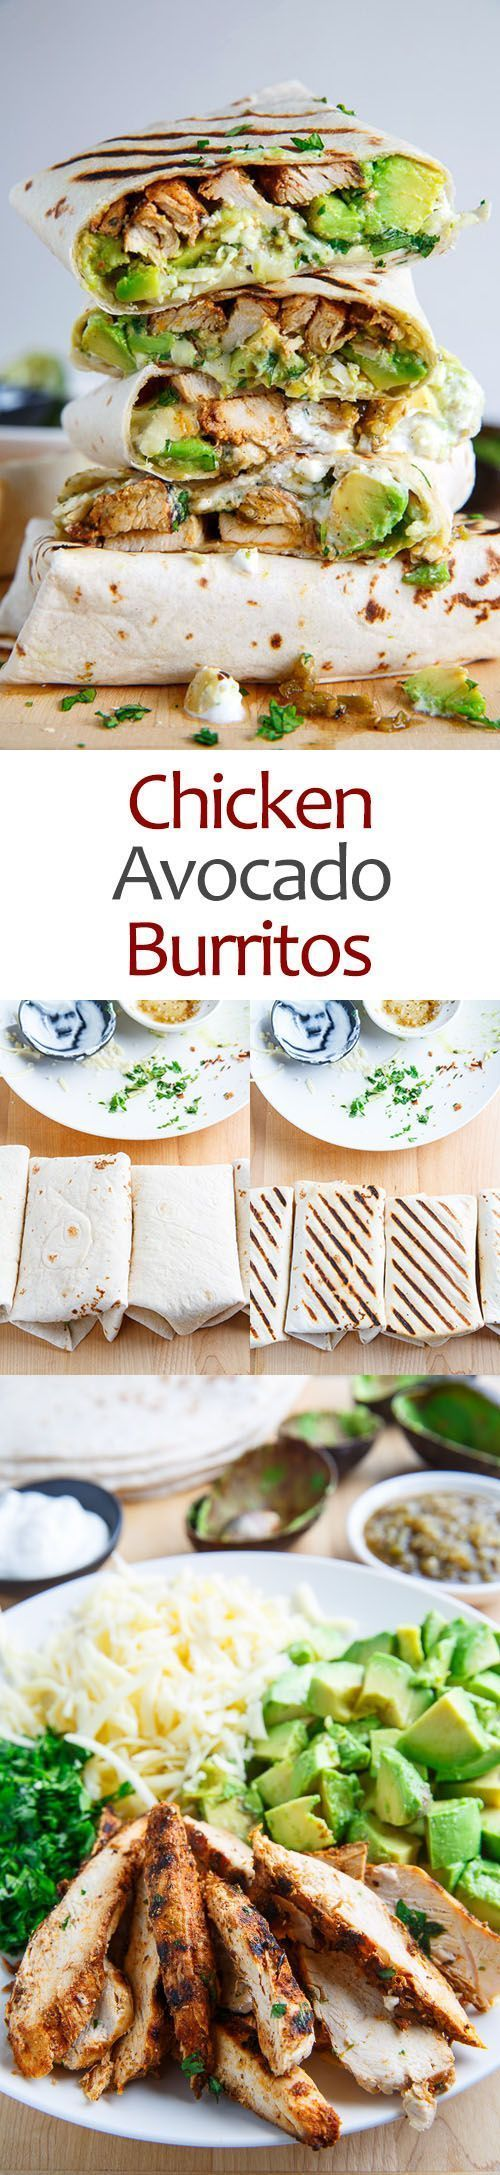 Chicken and Avocado Burritos                                                                                                                                                     More